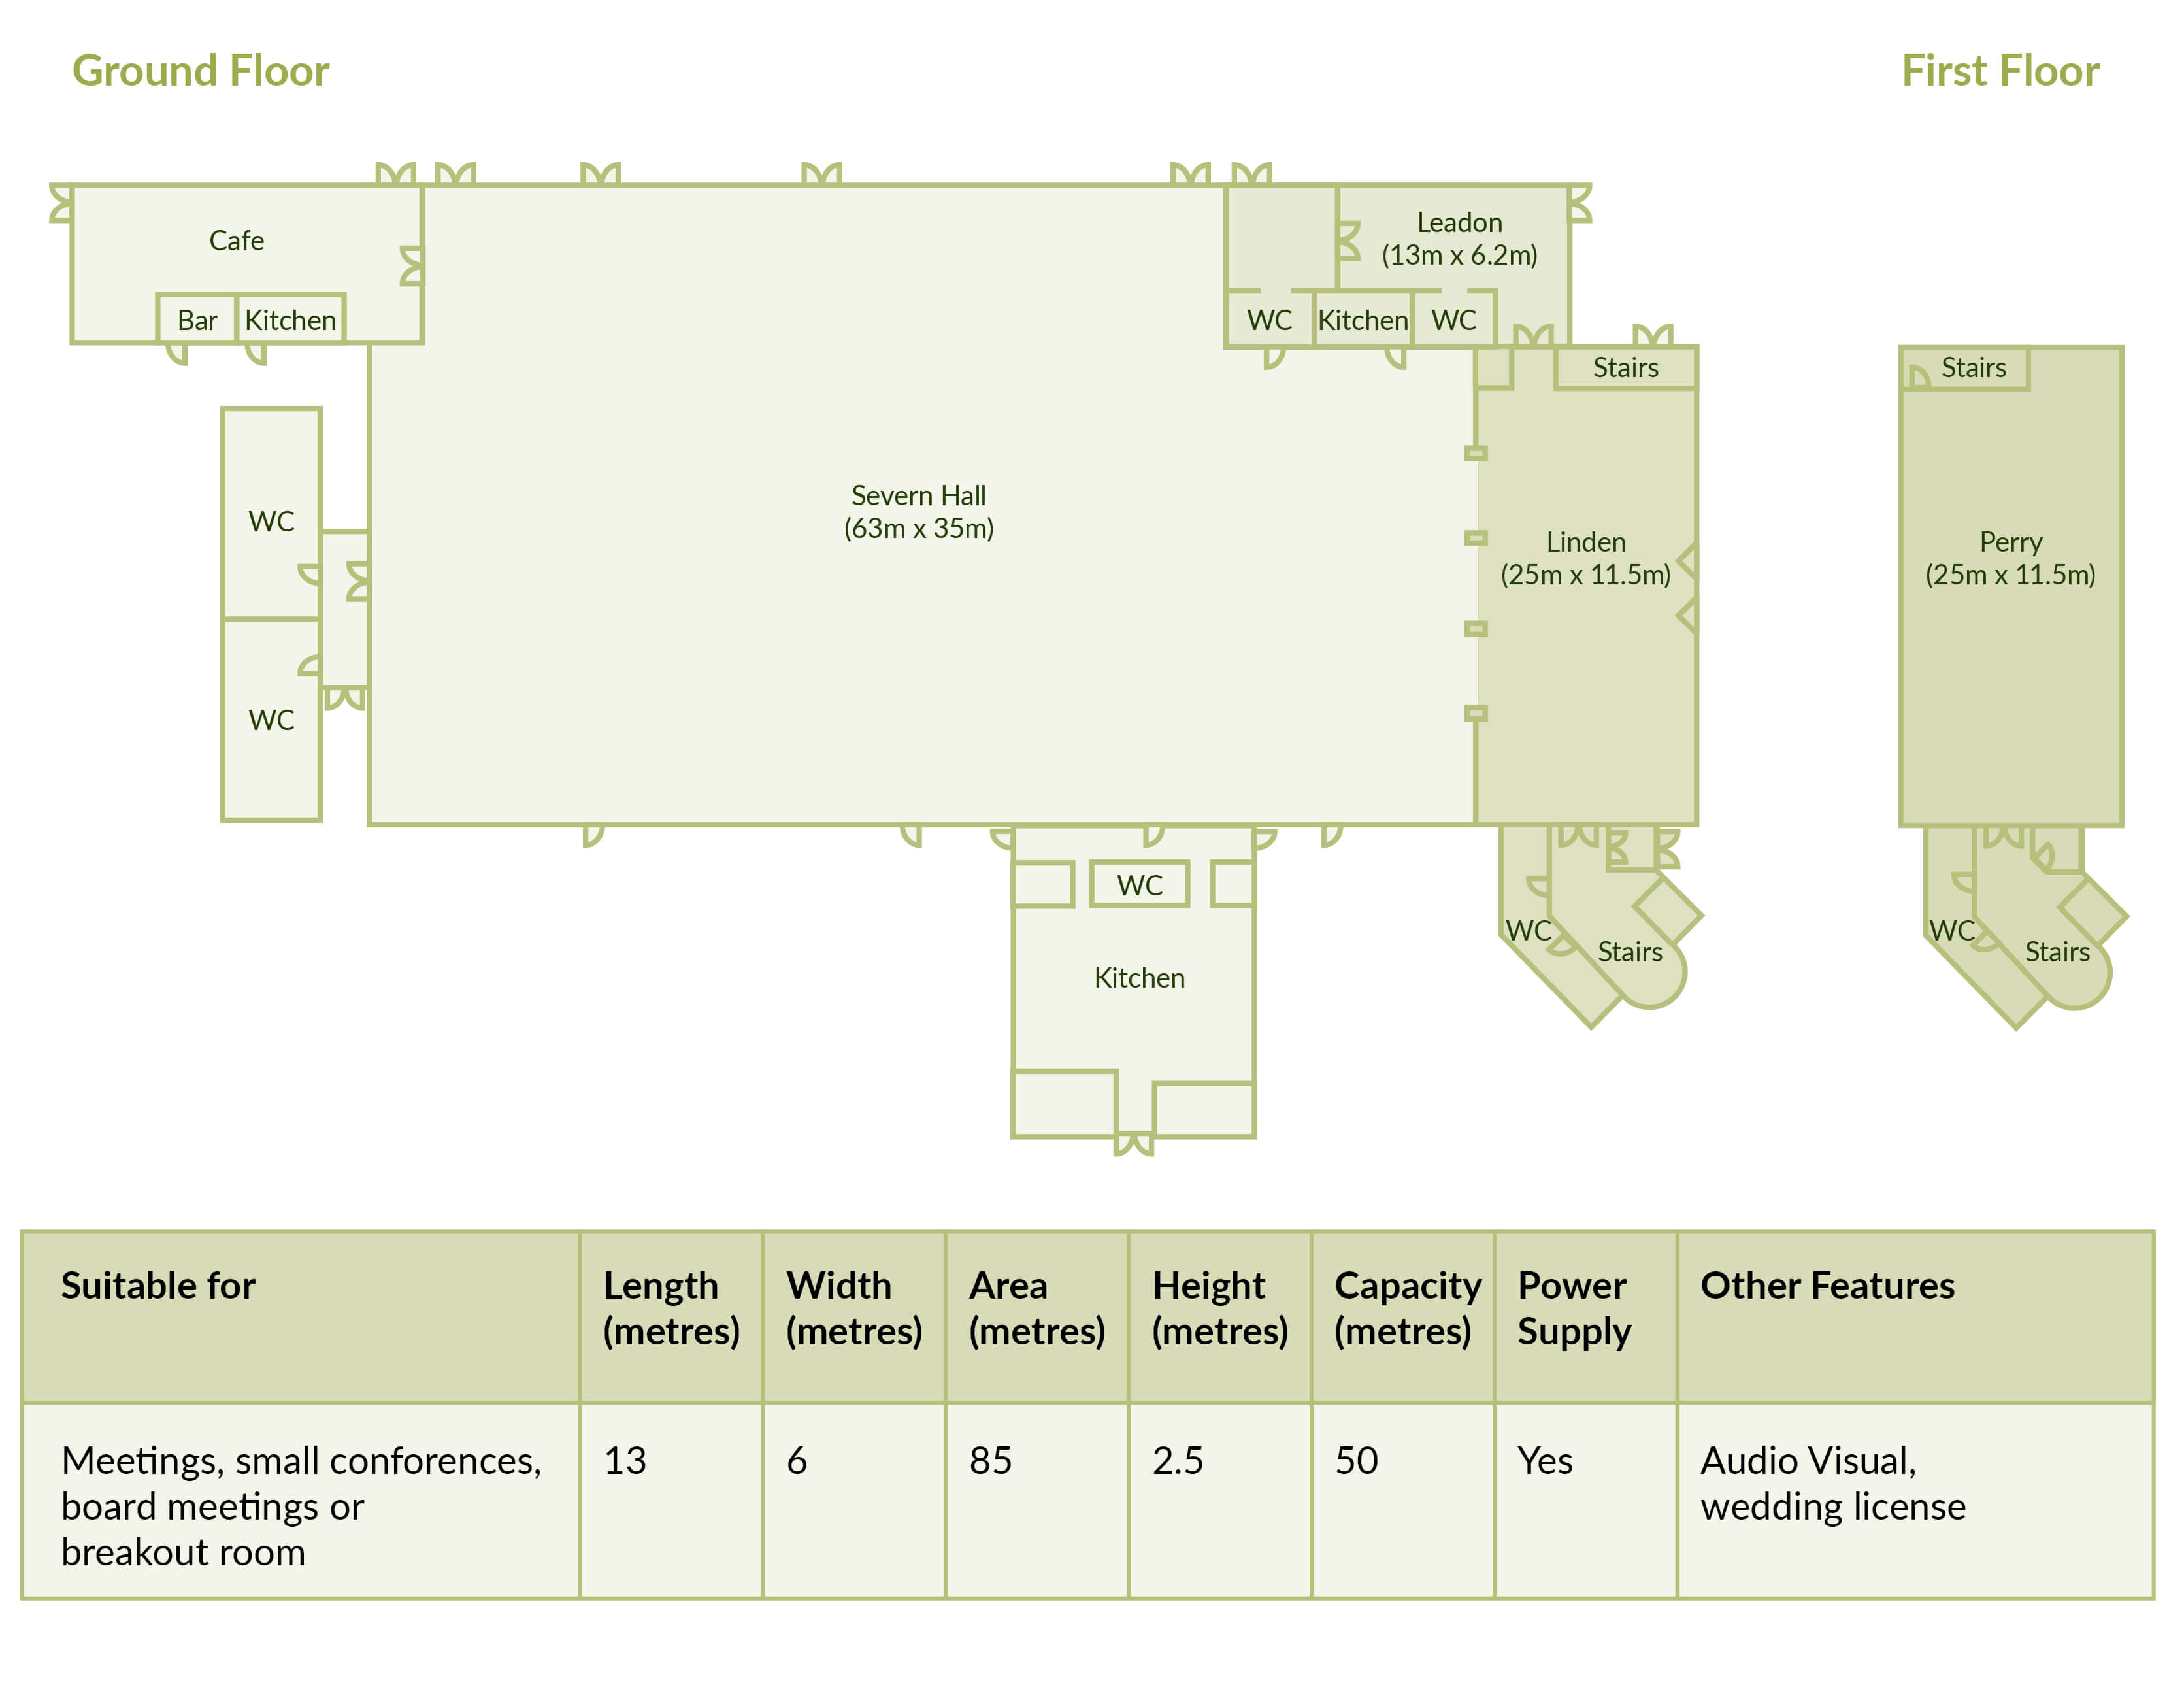 Leadon Suite Plan